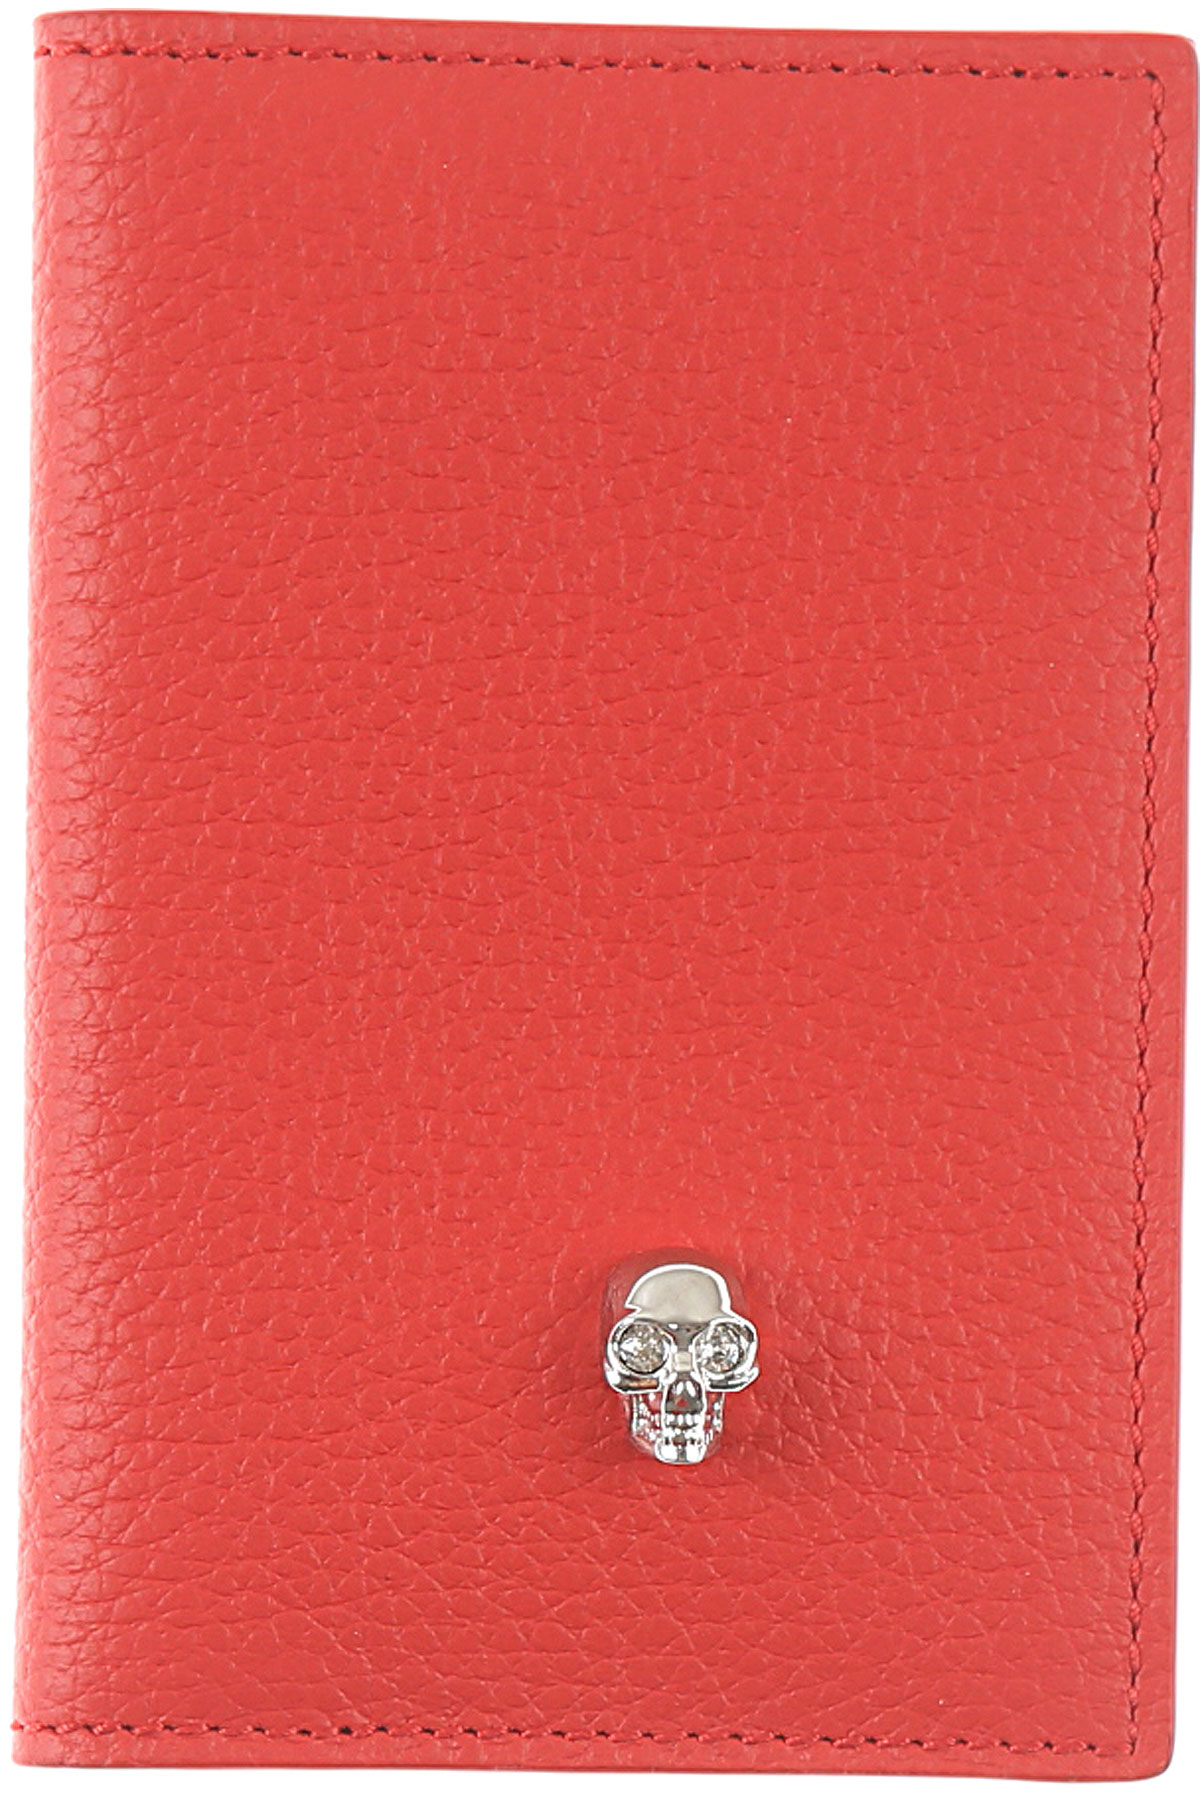 Image of Alexander McQueen Wallet for Women, Light Red, Leather, 2017